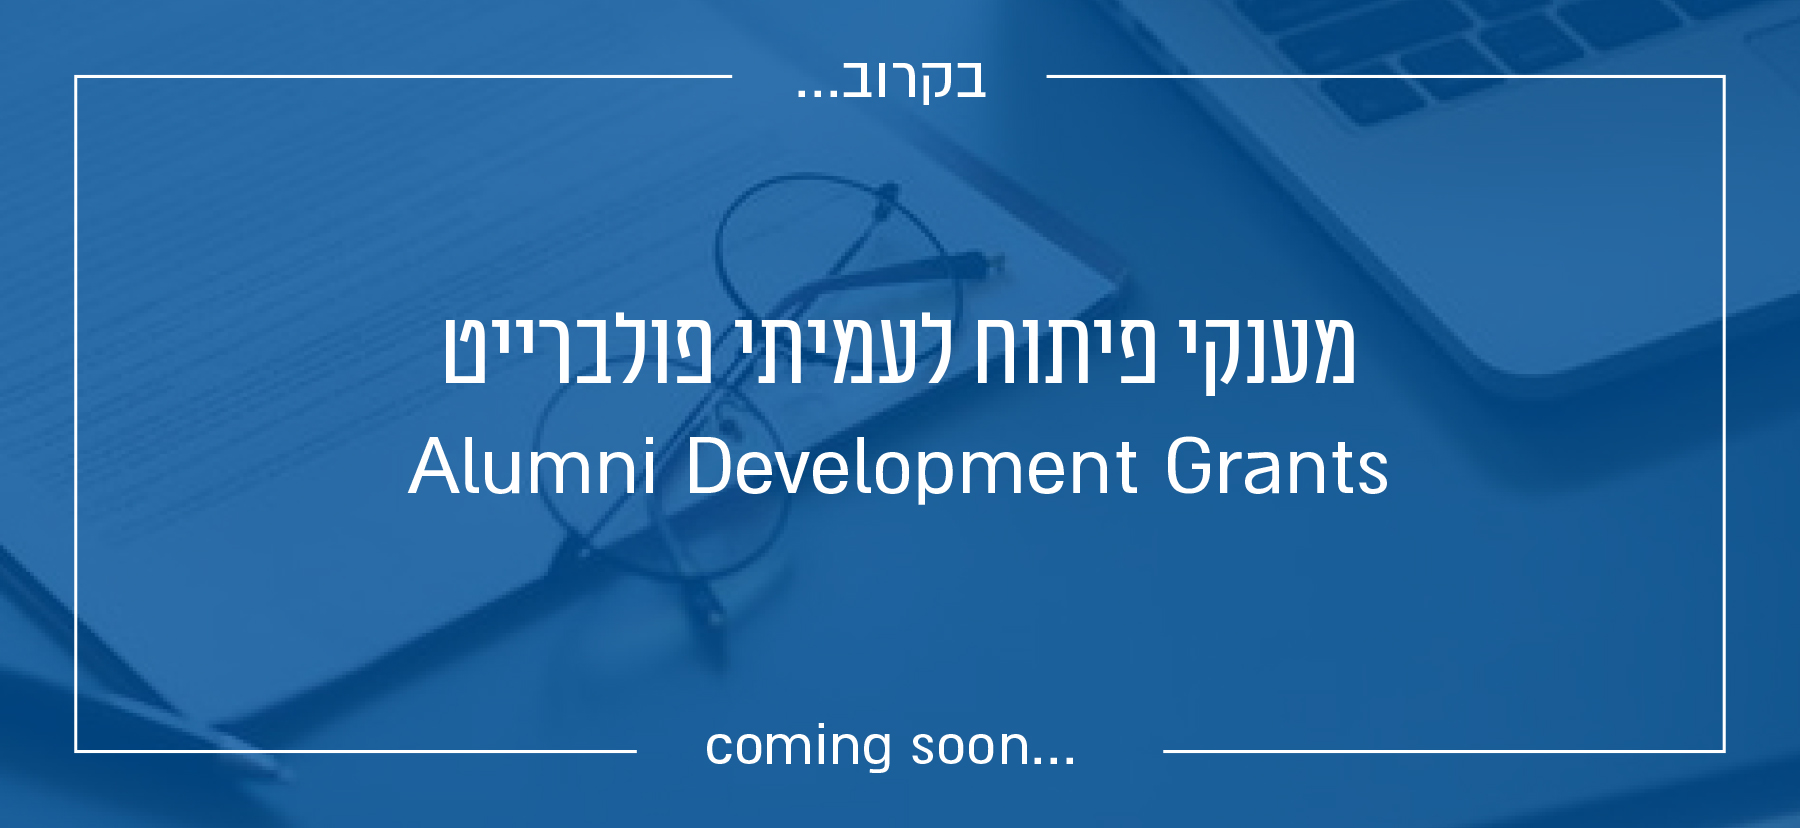 Alumni Development Grants